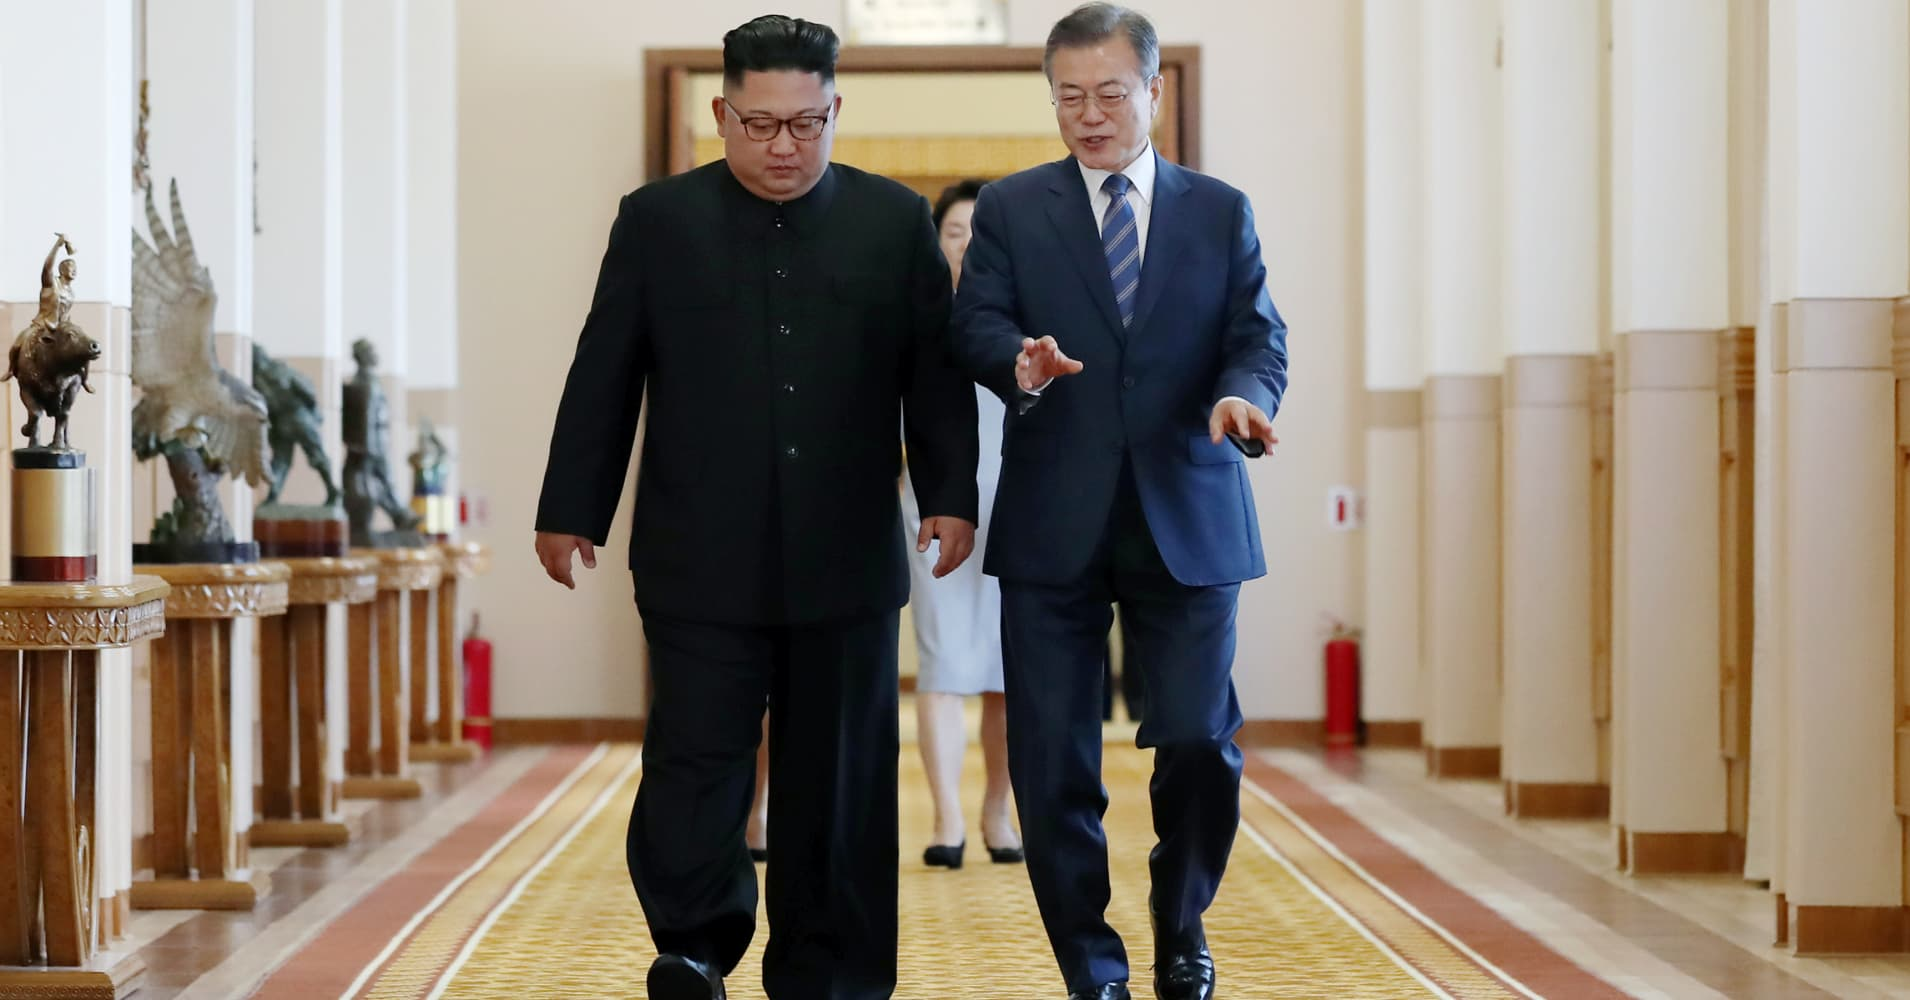 South Korea's Moon replaces unification minister to improve ties with Pyongyang